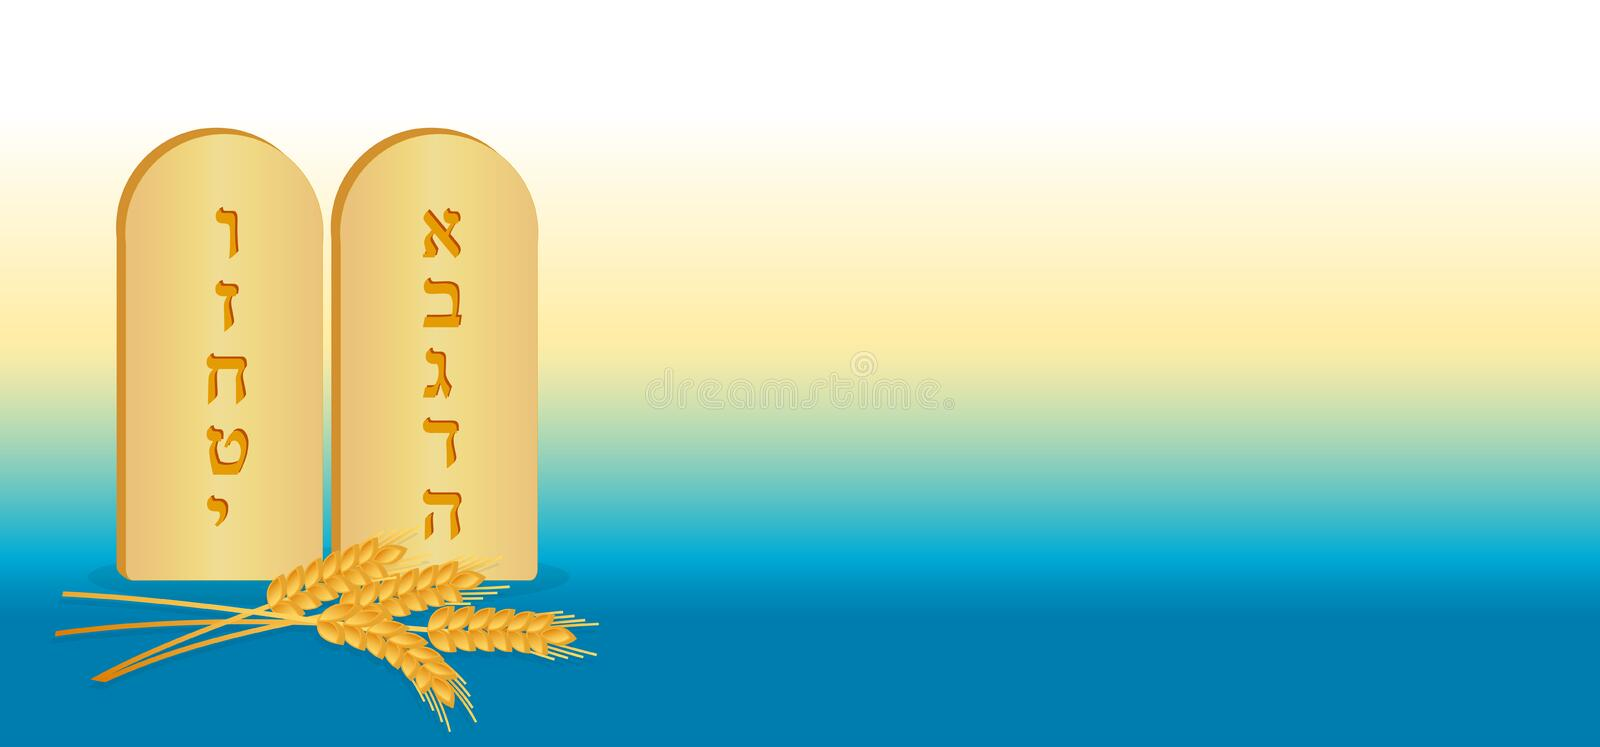 Tablets of Stone and wheat, banner stock illustration